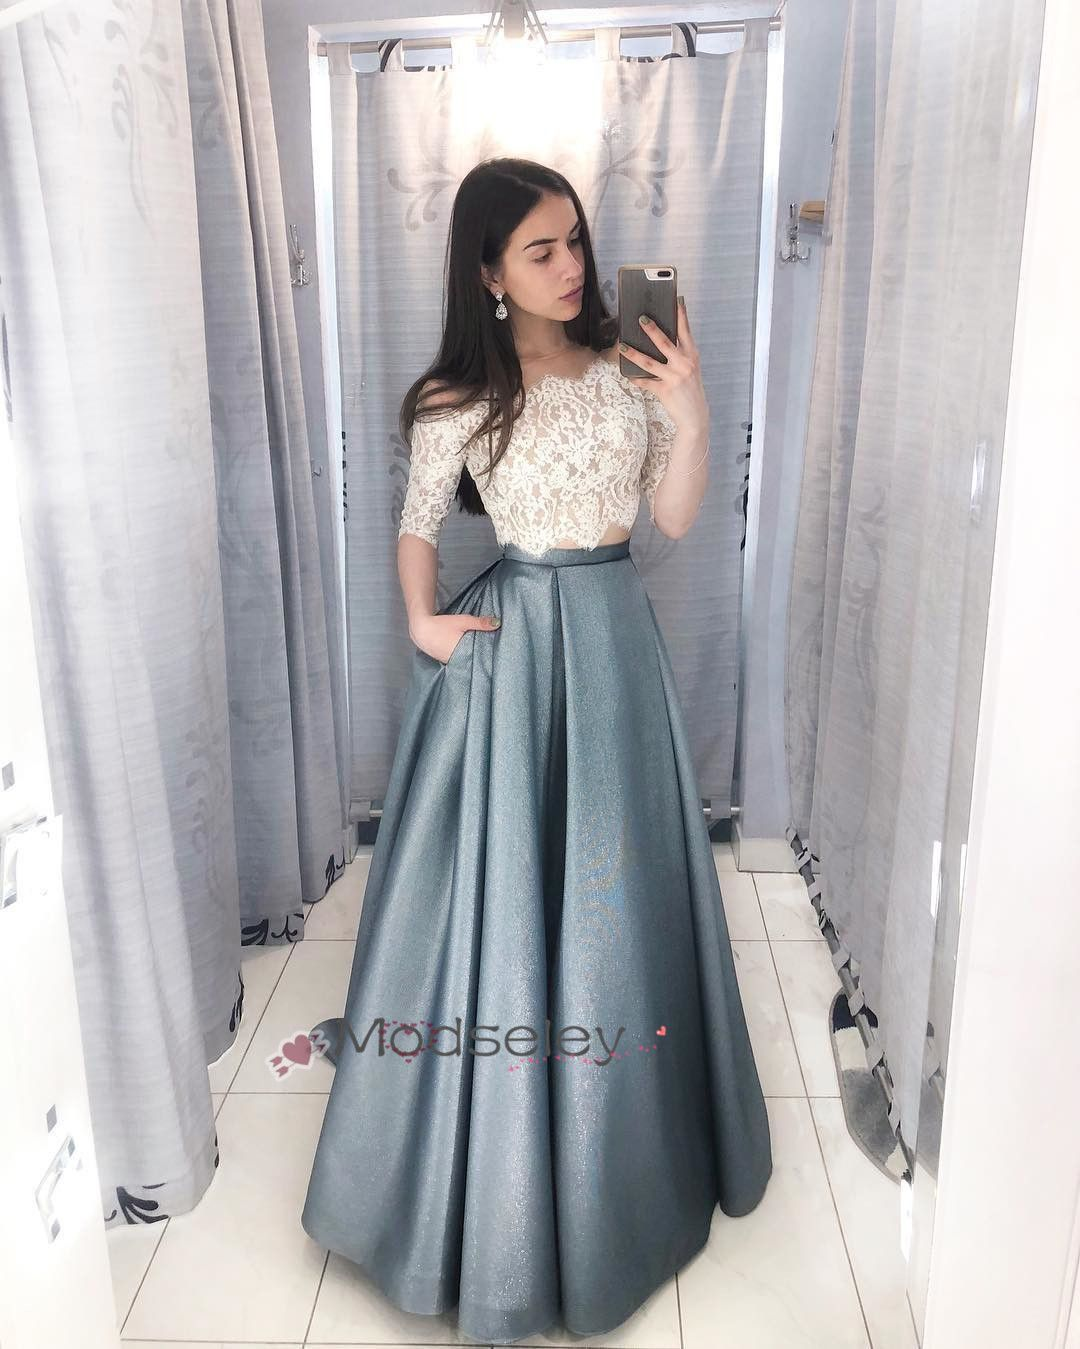 599d376d1a3 White and Blue Long Prom Dress with Half Sleeves from modseleystore ...